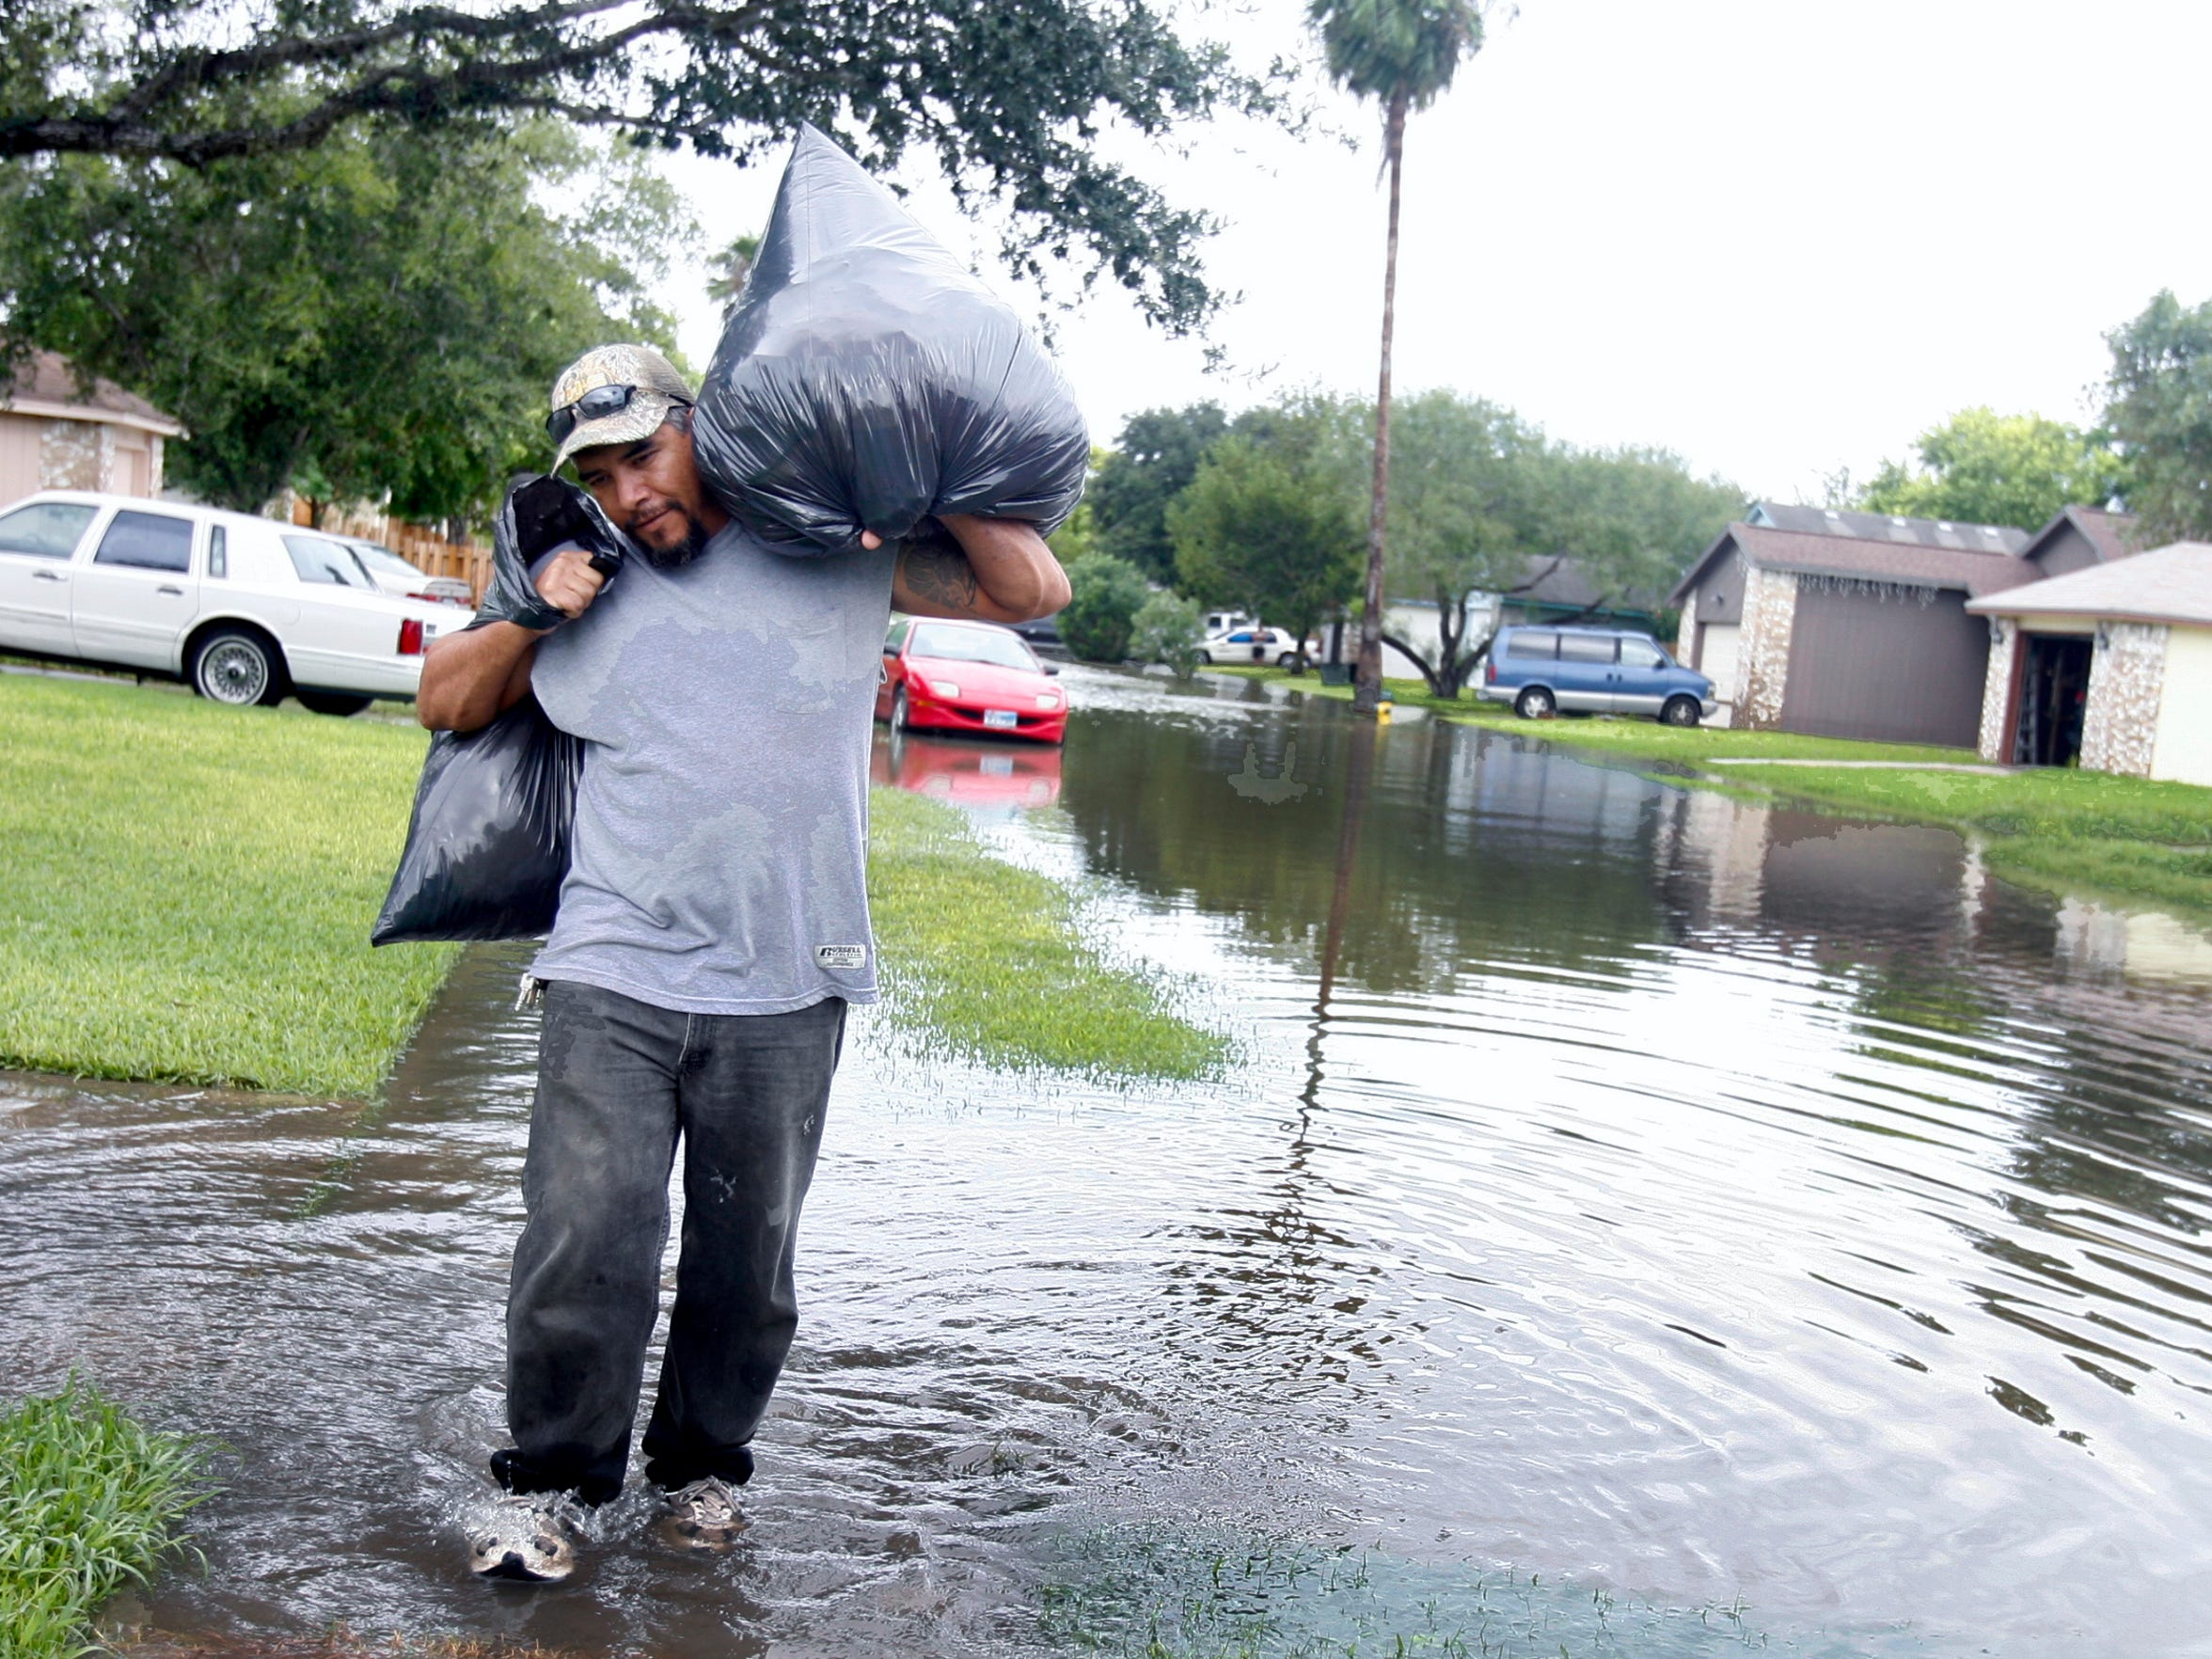 In this 2010 file photo, Joe Rocha carries garbage bags full of soggy belongings through Las Colonias subdivision. The subdivision, located near. Many residents reported they were up to their chests in water. In draft 2015 flood maps, part of the neighborhood is shown in a floodway and the remainder, in a floodplain. Revised maps are expected to be released this year.